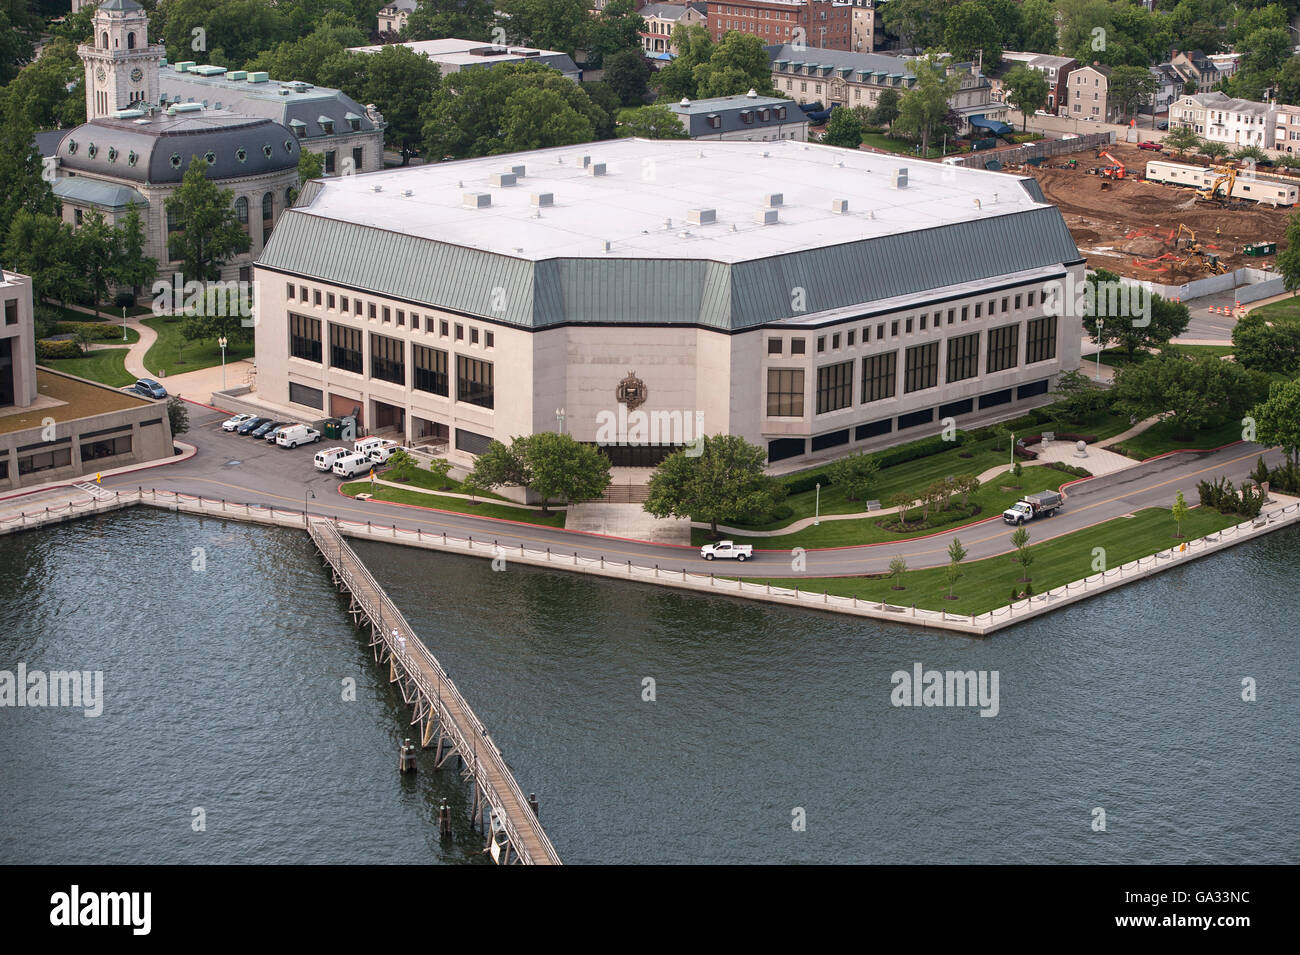 Alumni Hall at the U.S Naval Academy along the Severn River in Annapolis, Maryland. - Stock Image